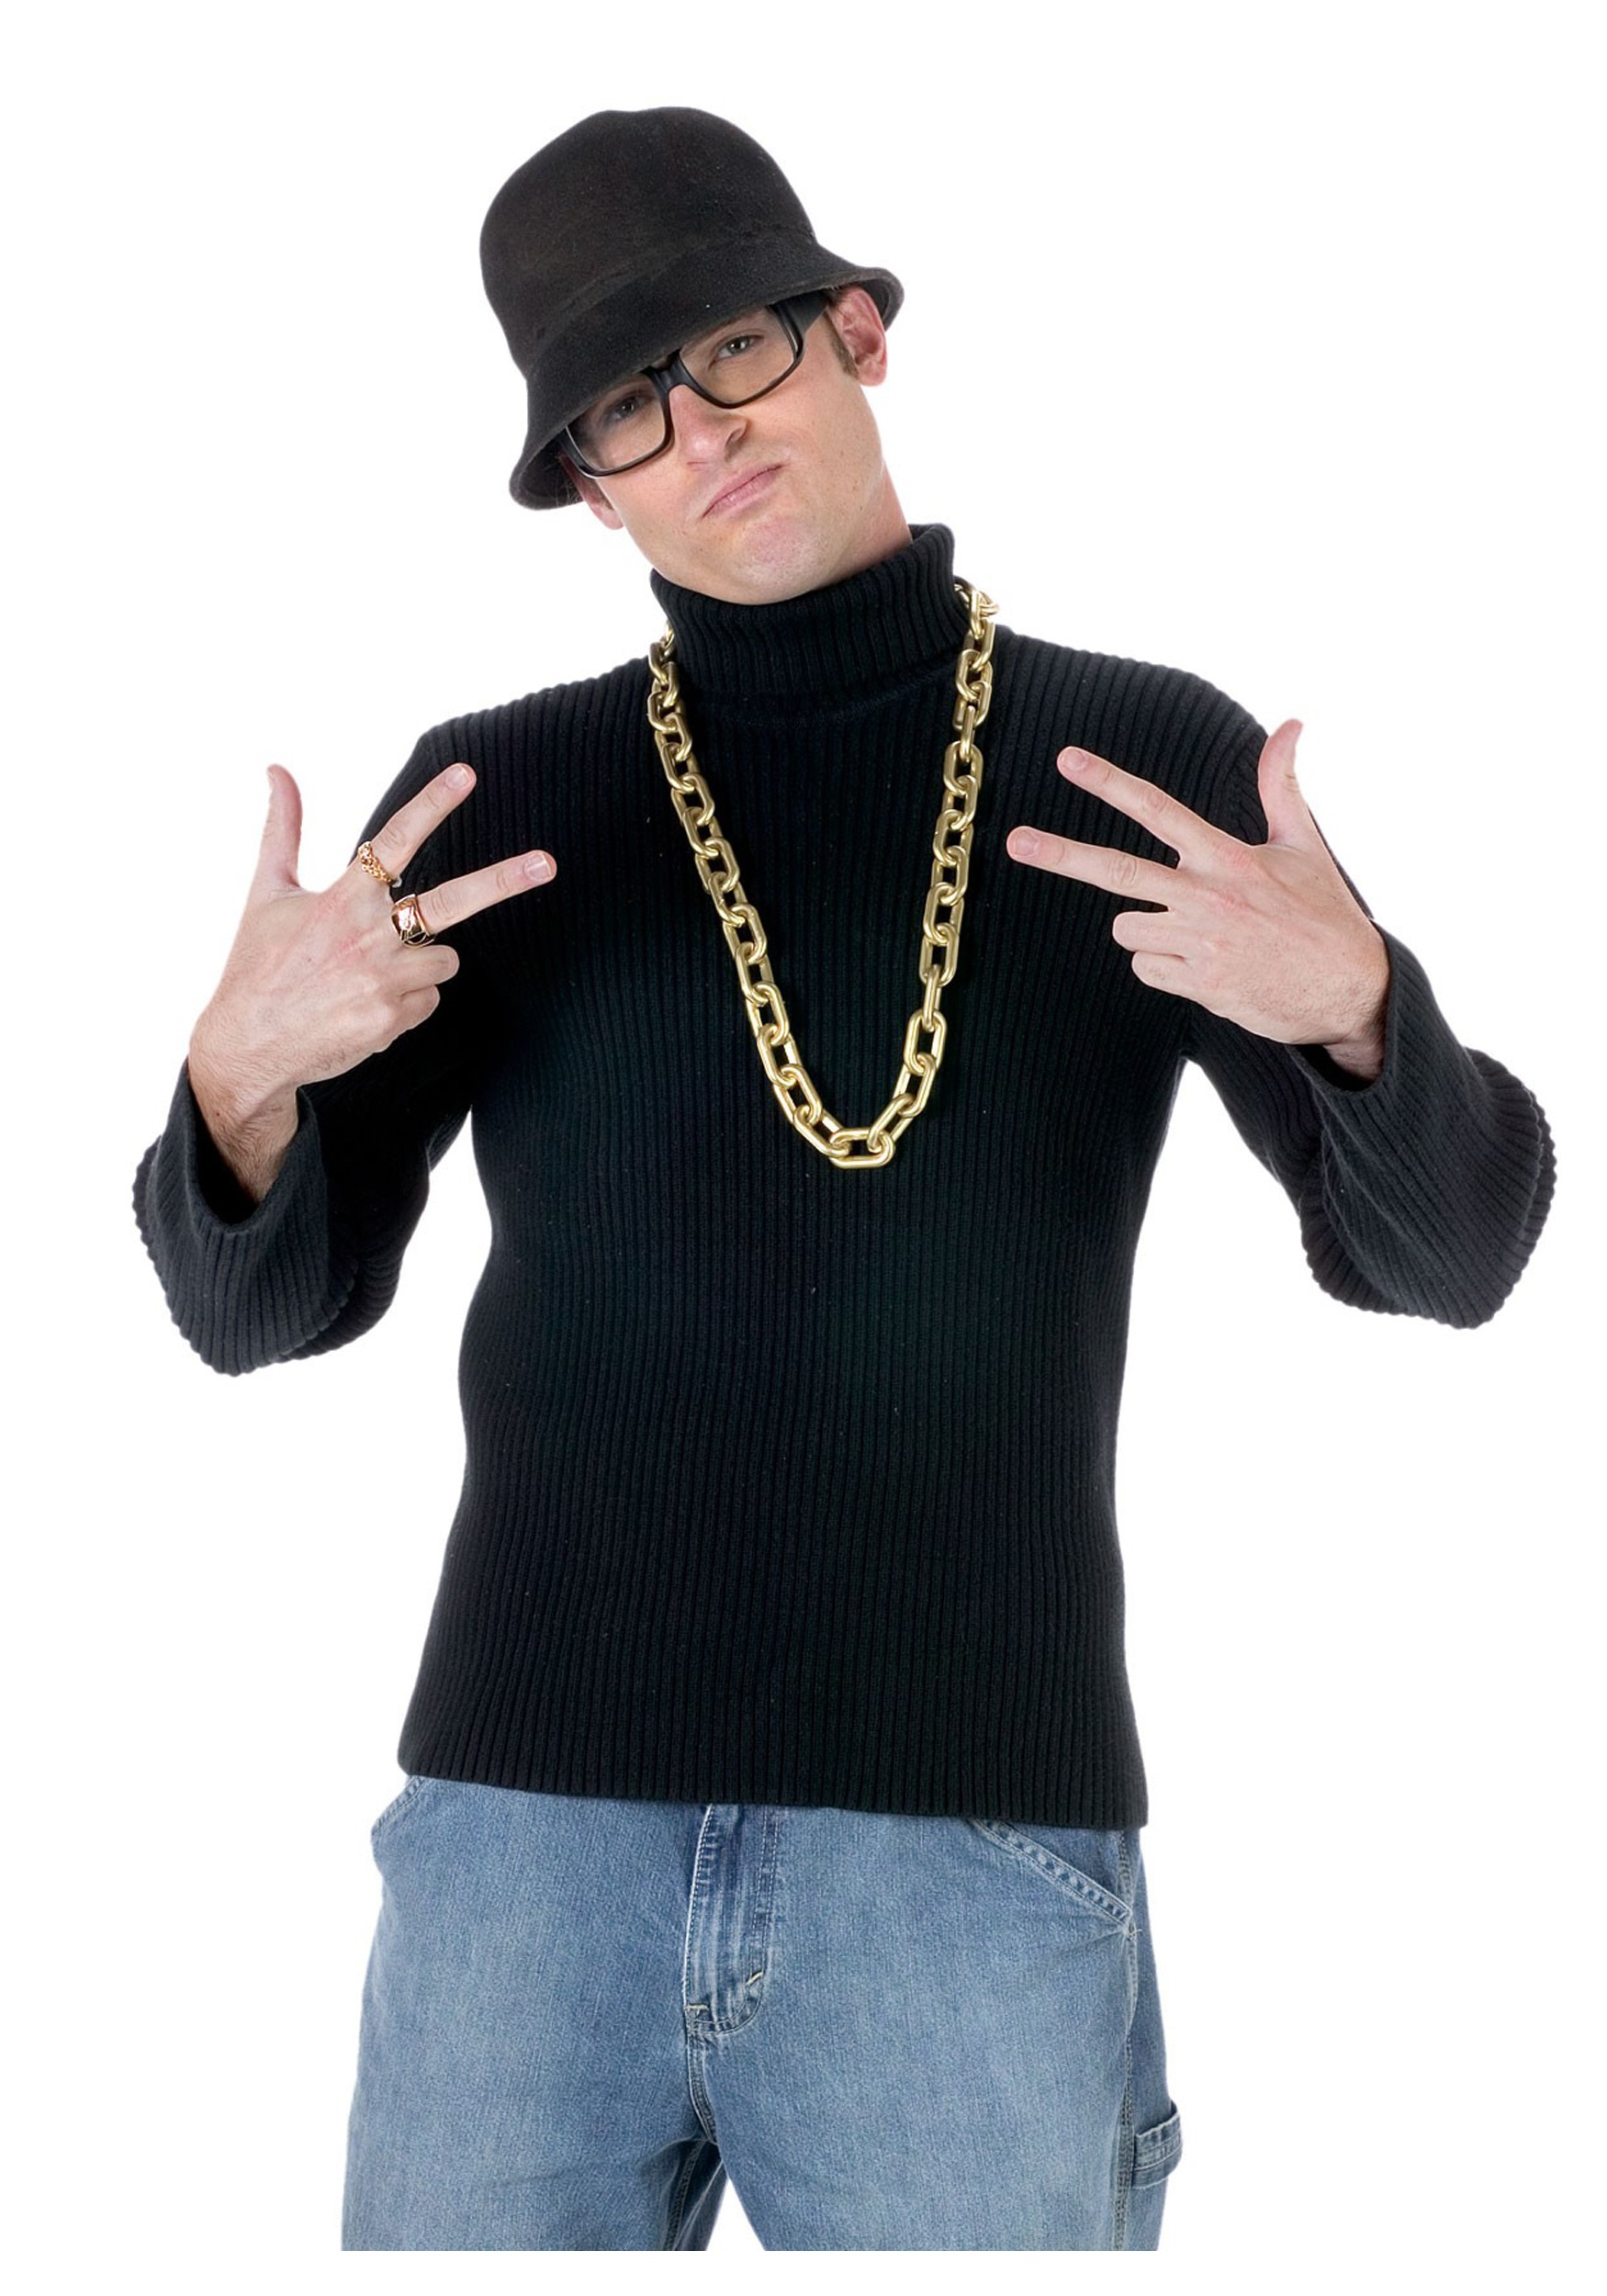 Old School Rapper Costume Kit Jpg